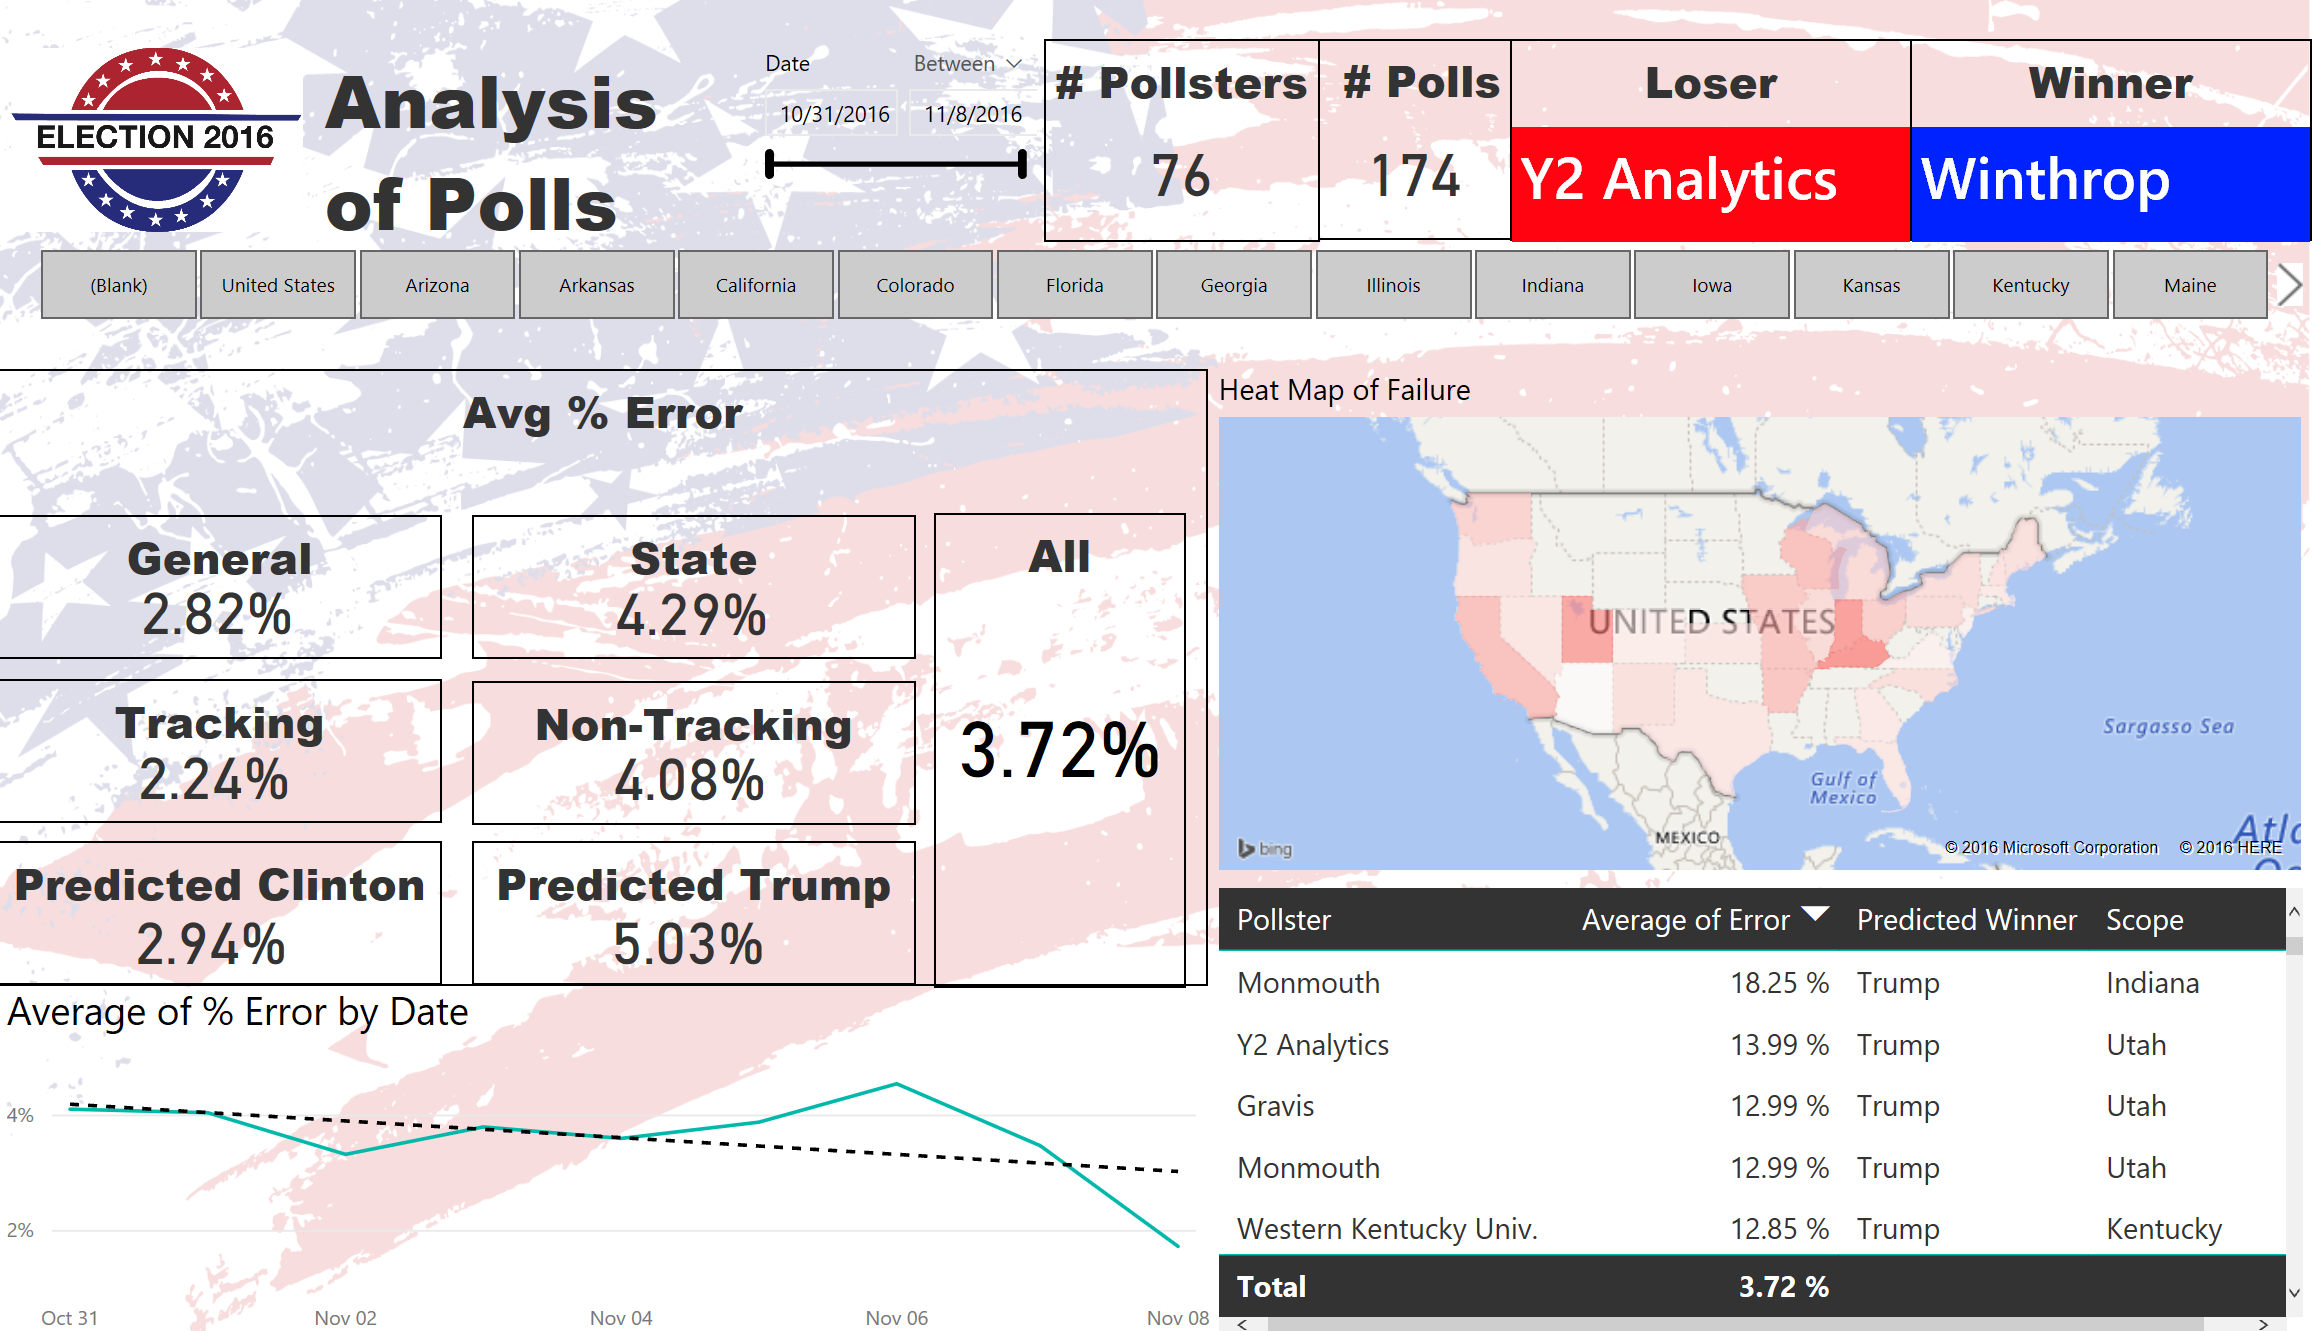 2016 Presidential Election Polls Analysis